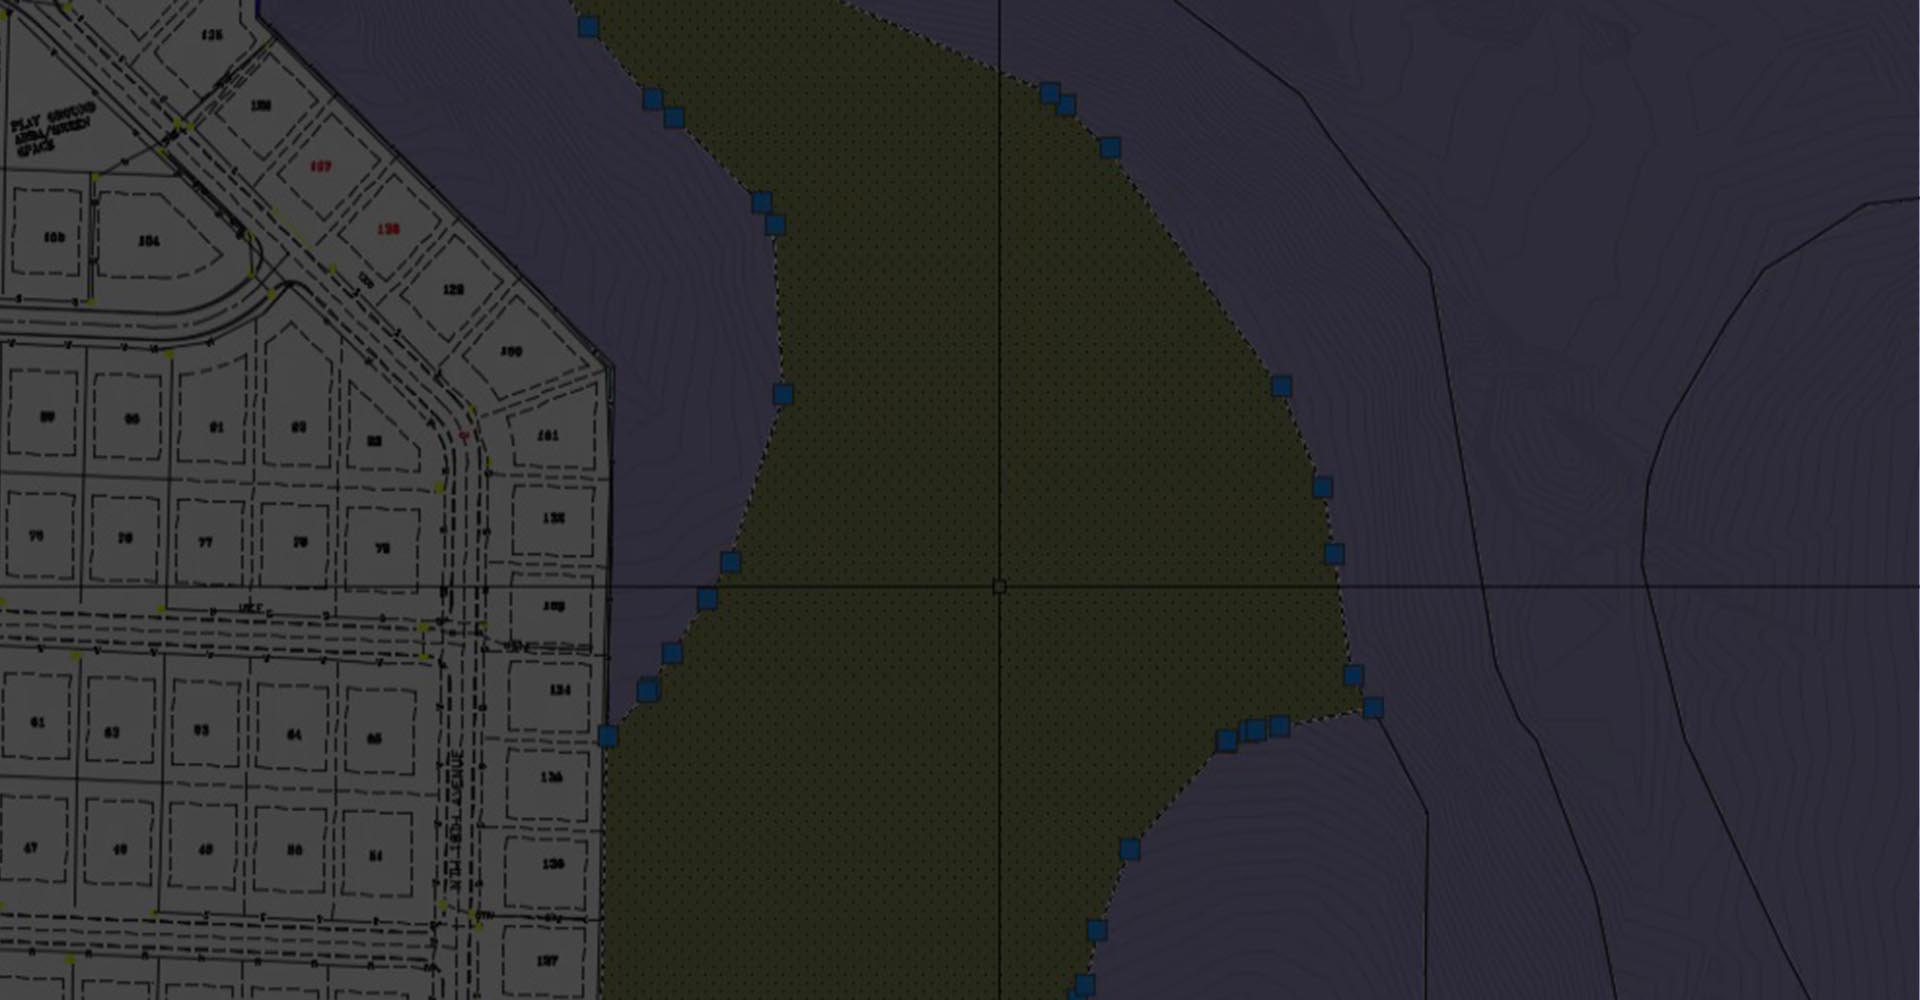 Autocad map 3d 3d gis mapping software autodesk gumiabroncs Choice Image